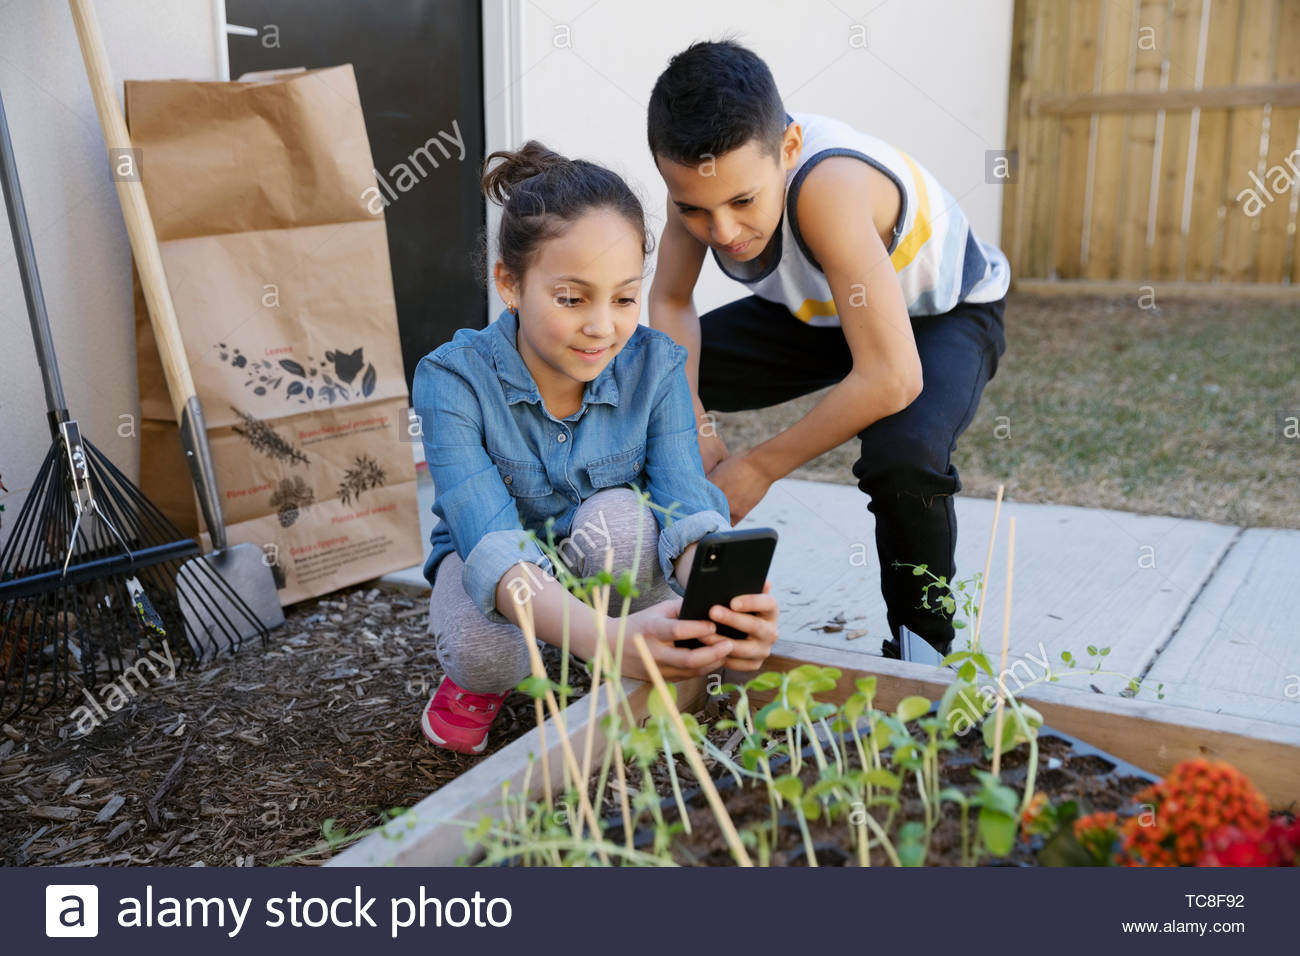 Brother and sister with camera phone photographing seedlings in garden - Stock Image